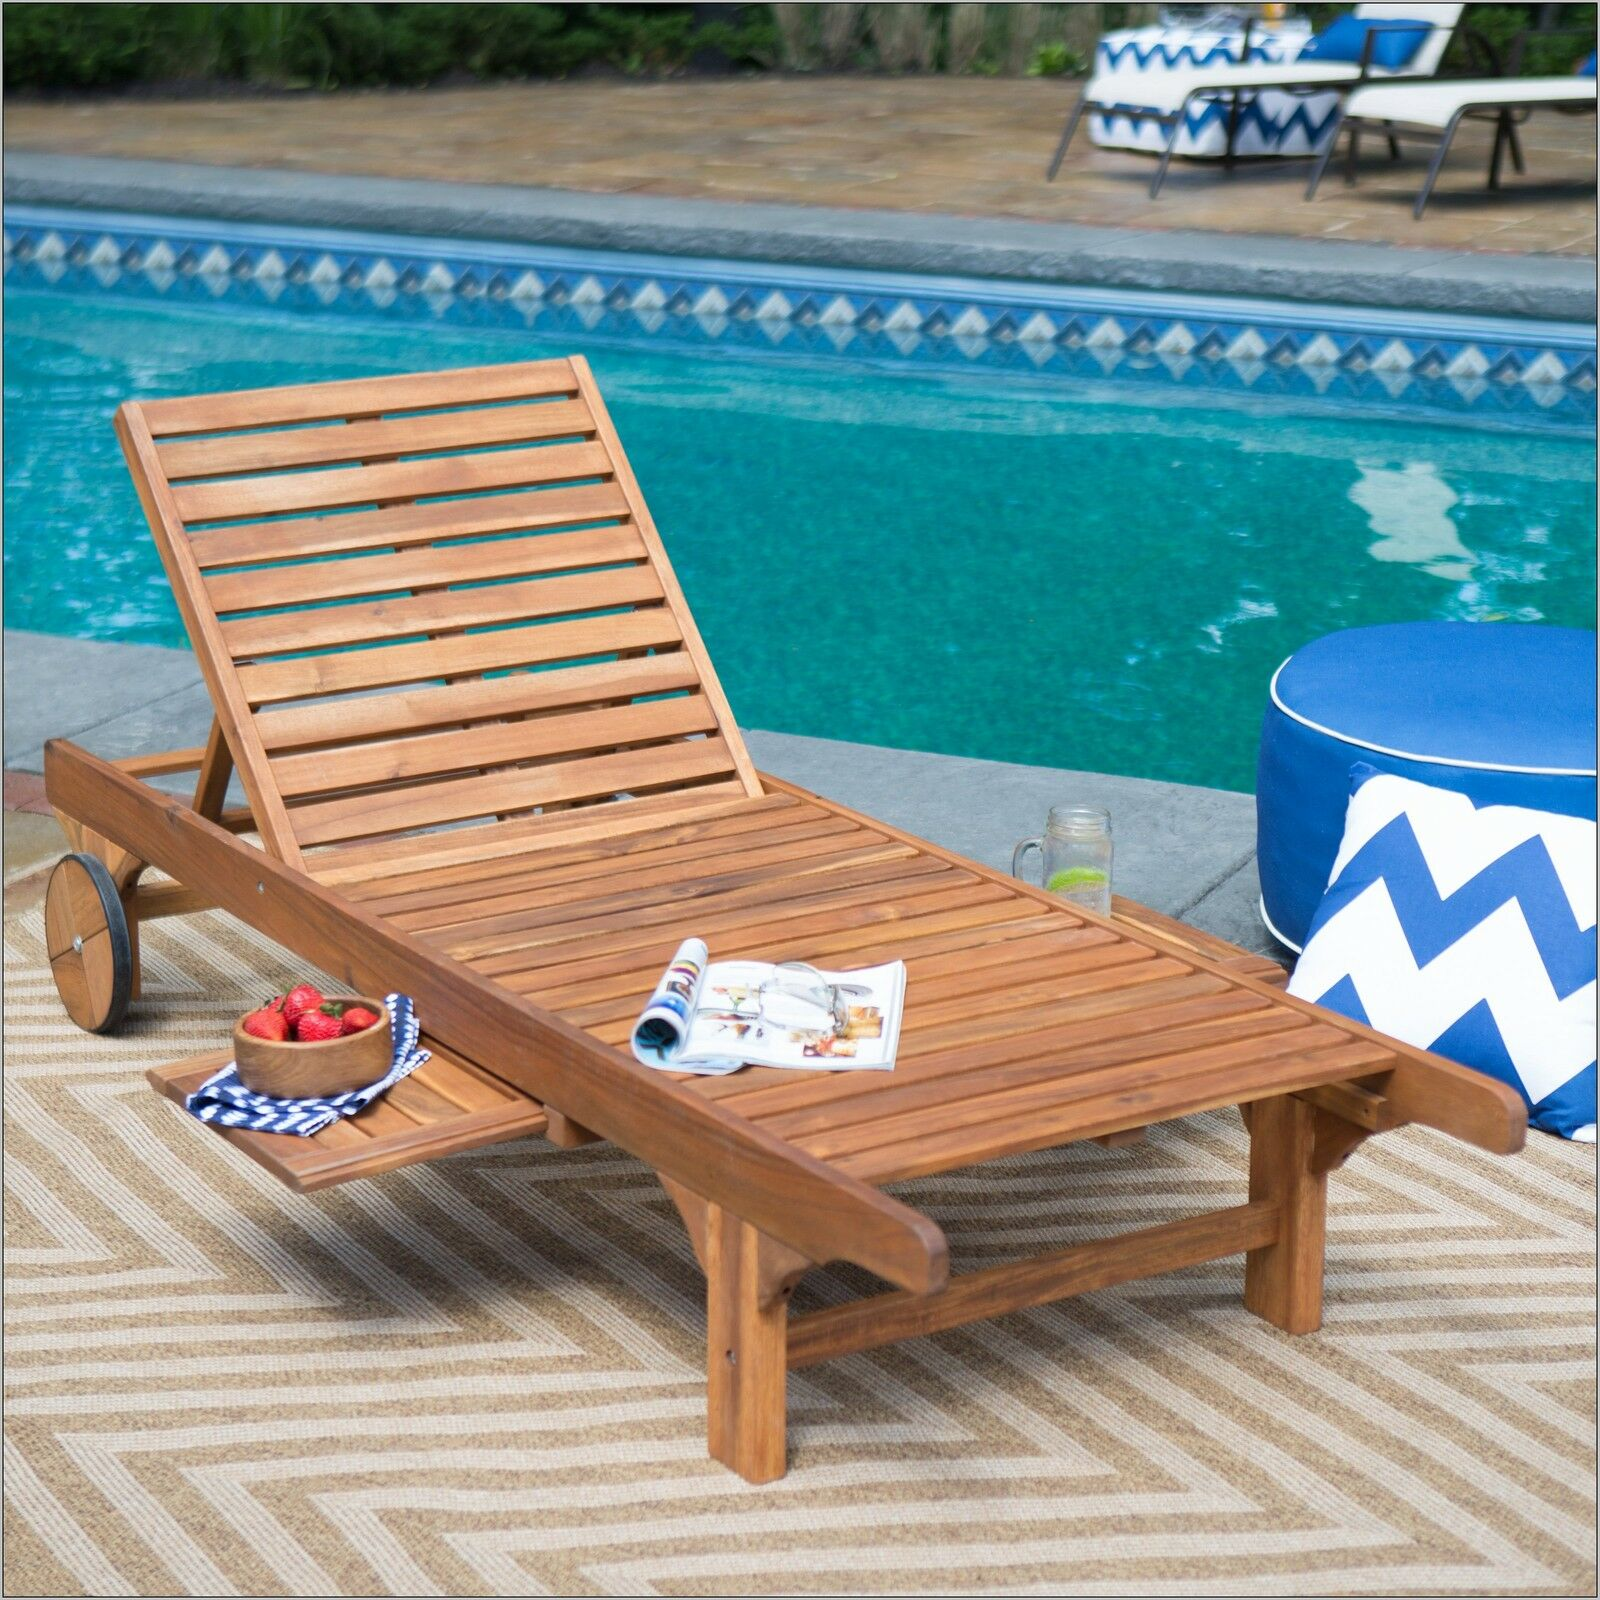 Outdoor Chaise Lounge Chair Recliner Pool Deck Patio Lounger